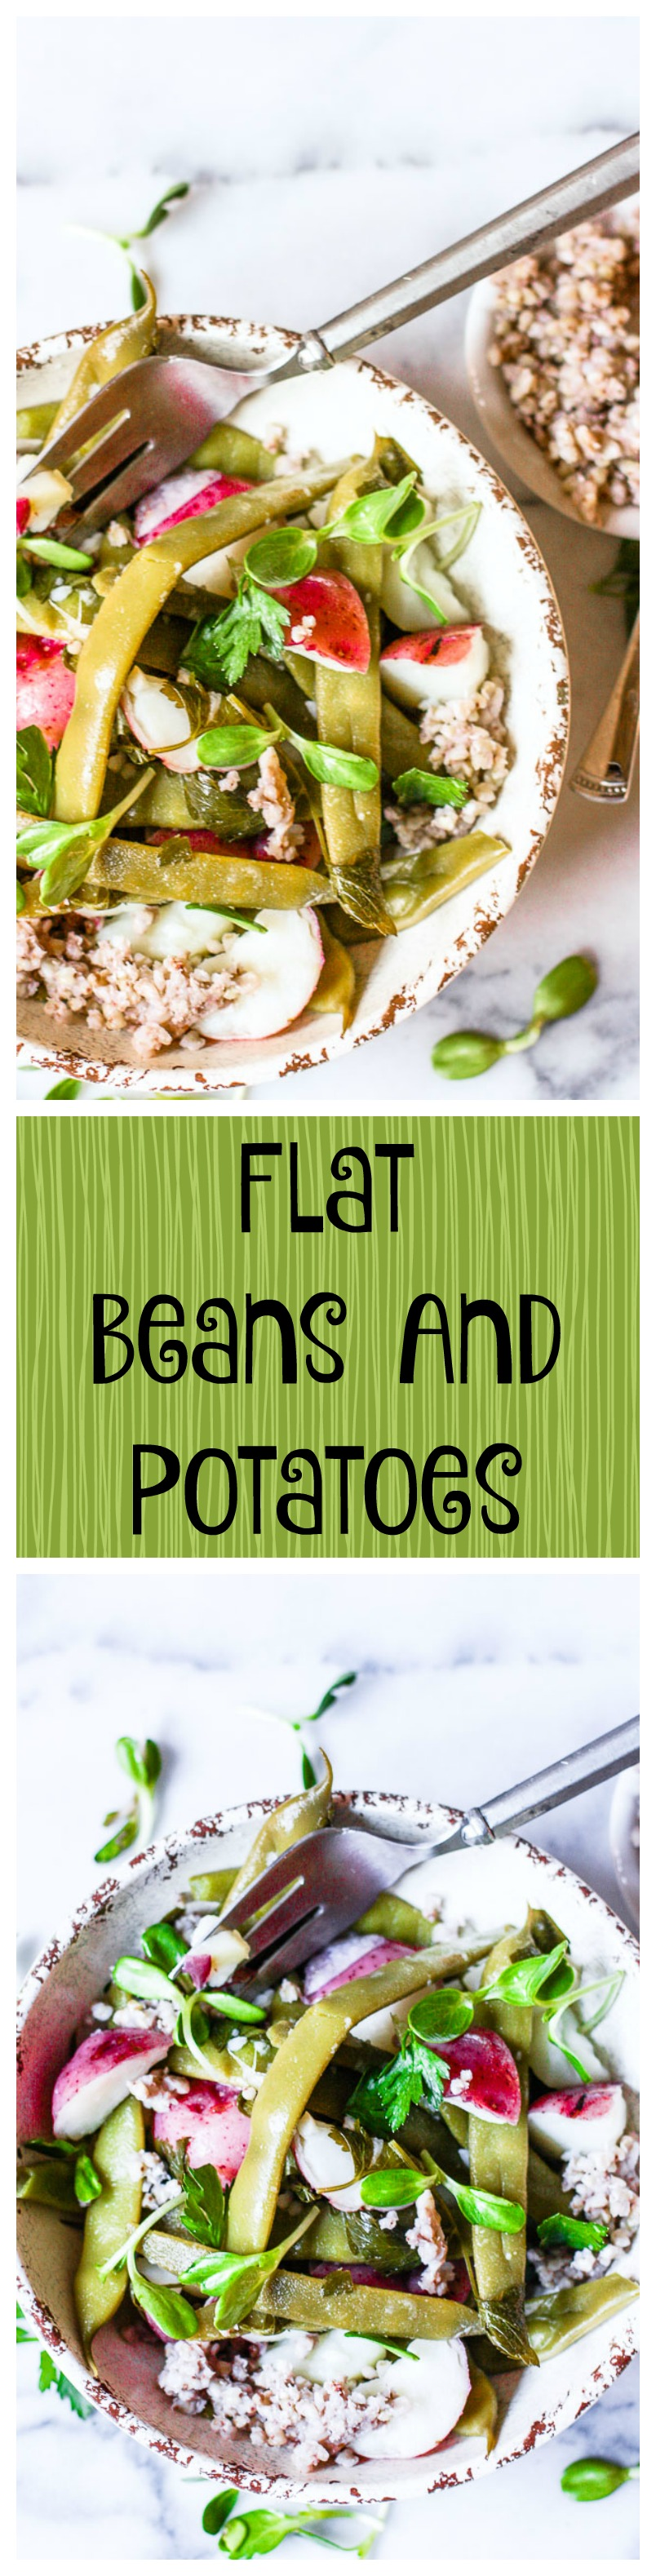 flat beans and potatoes